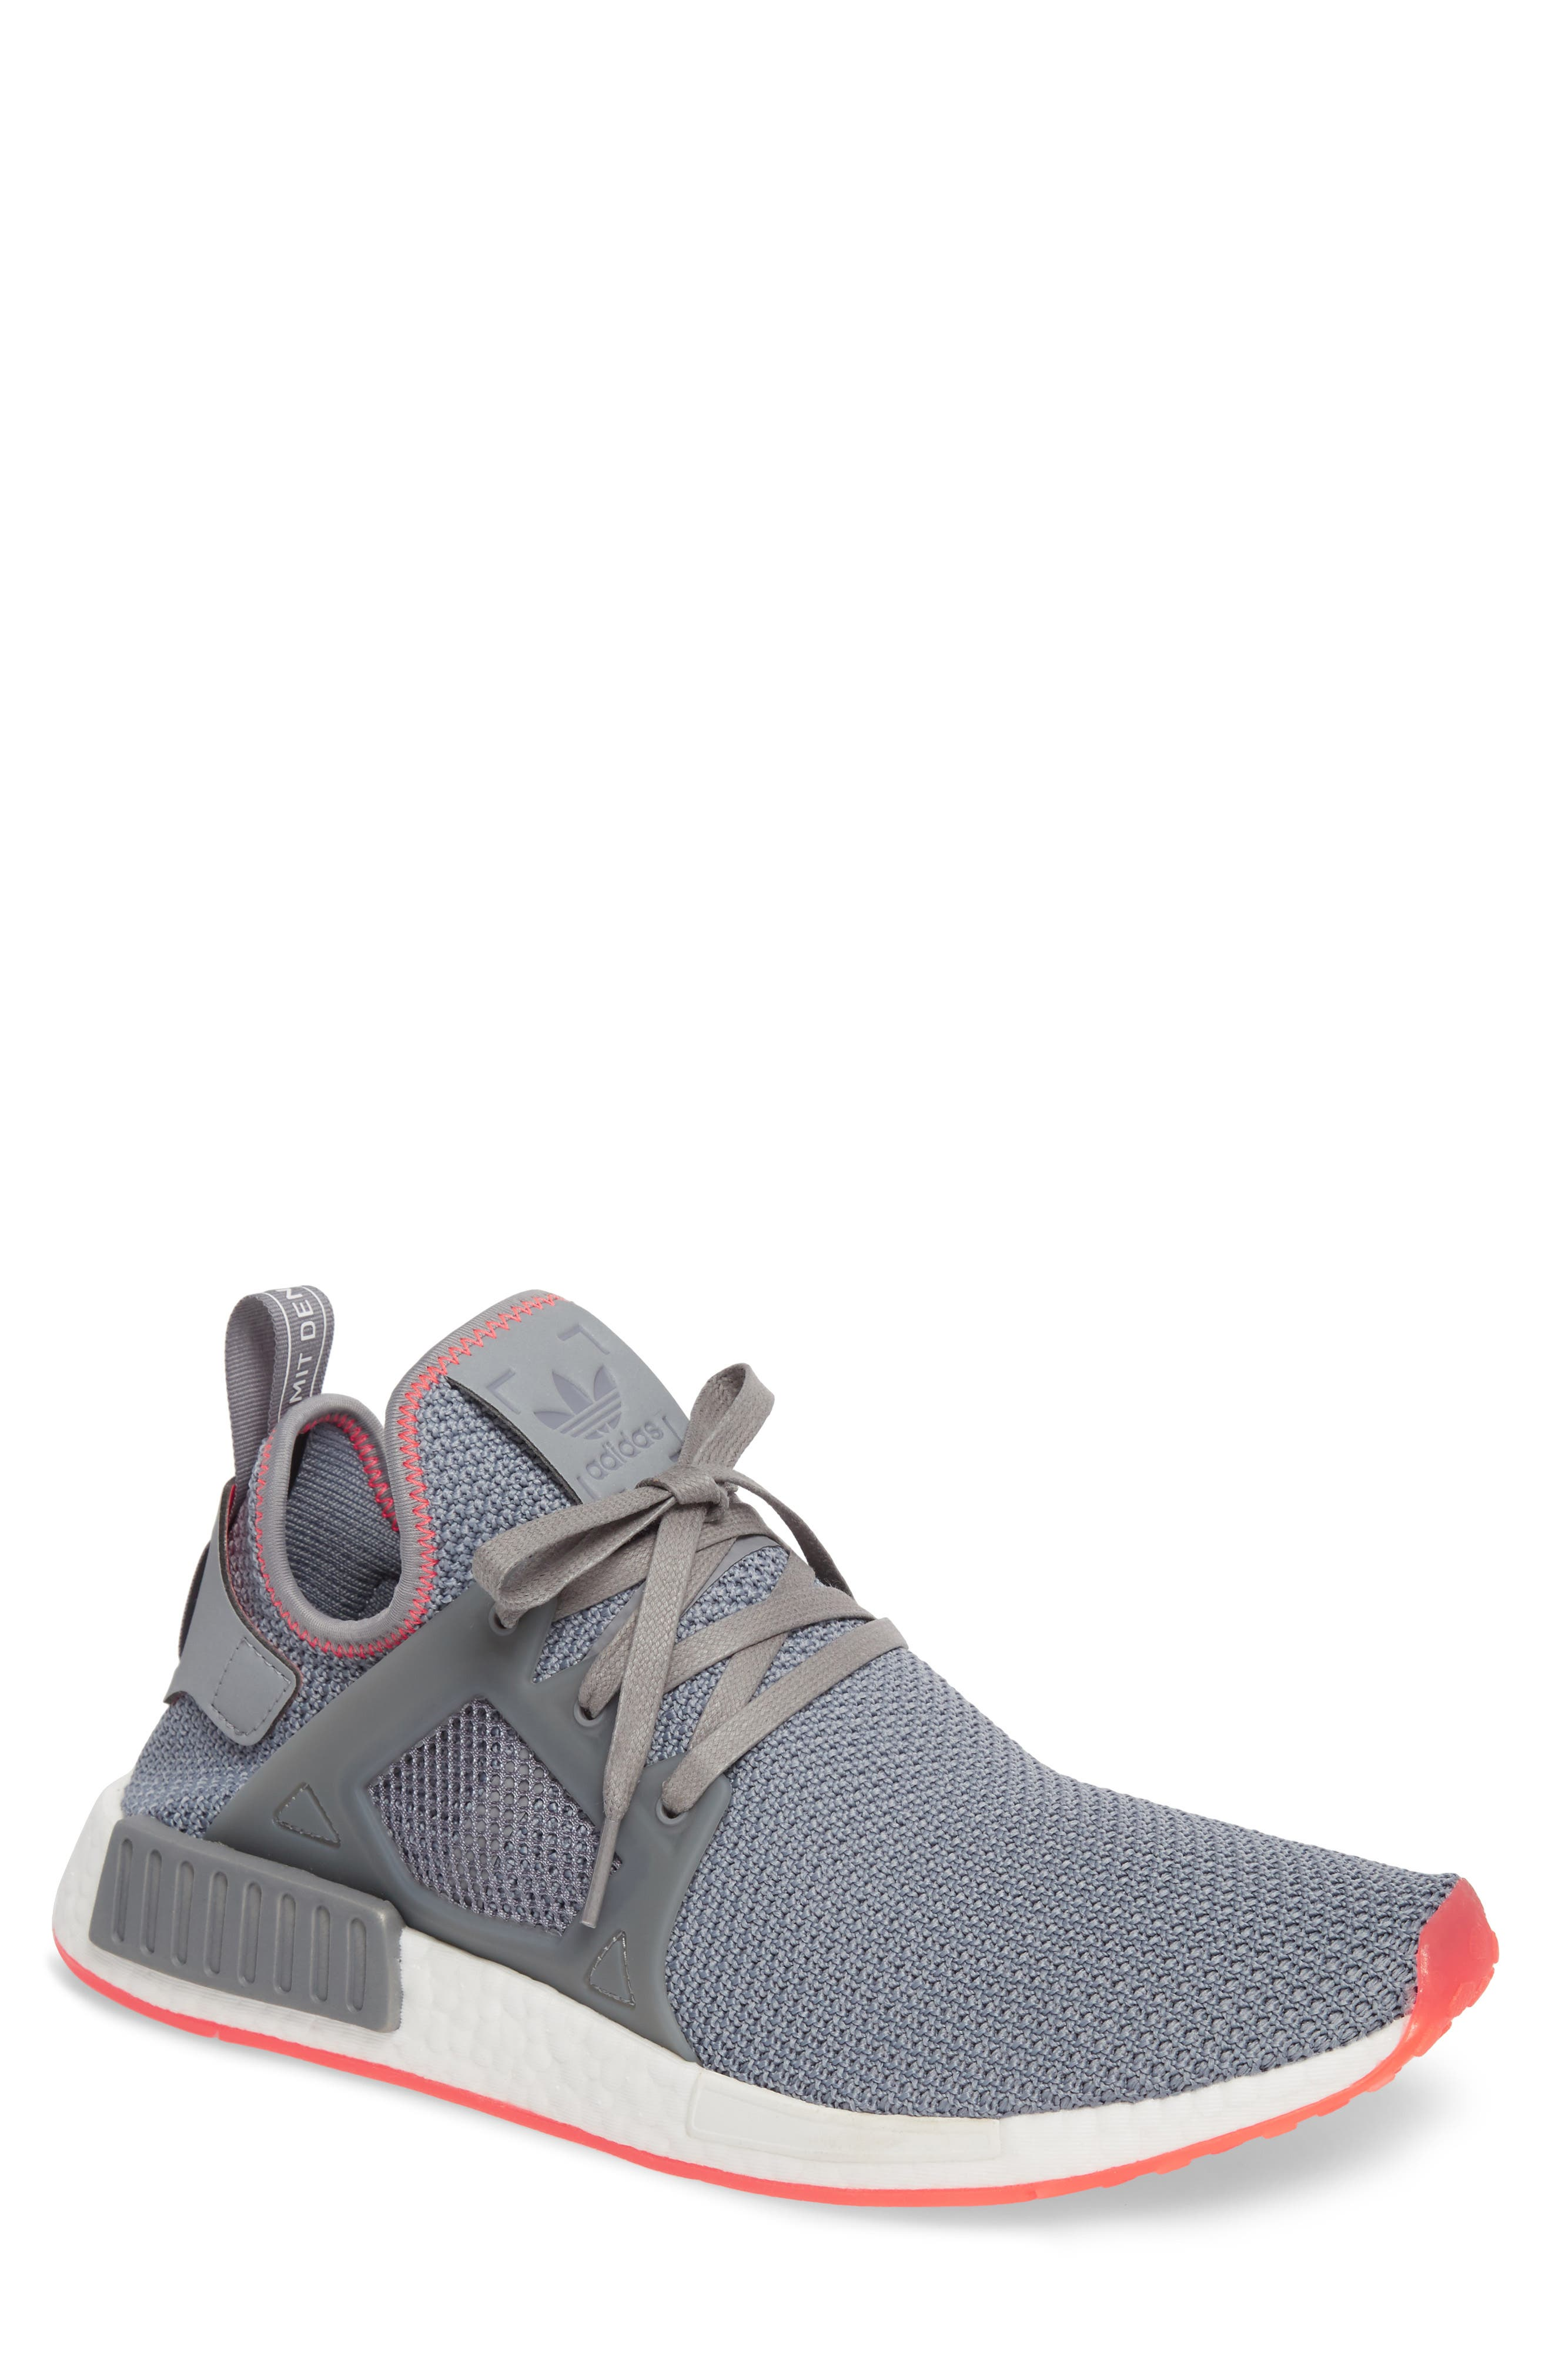 NMD_XR1 Sneaker,                             Main thumbnail 1, color,                             Grey Heather/ Red